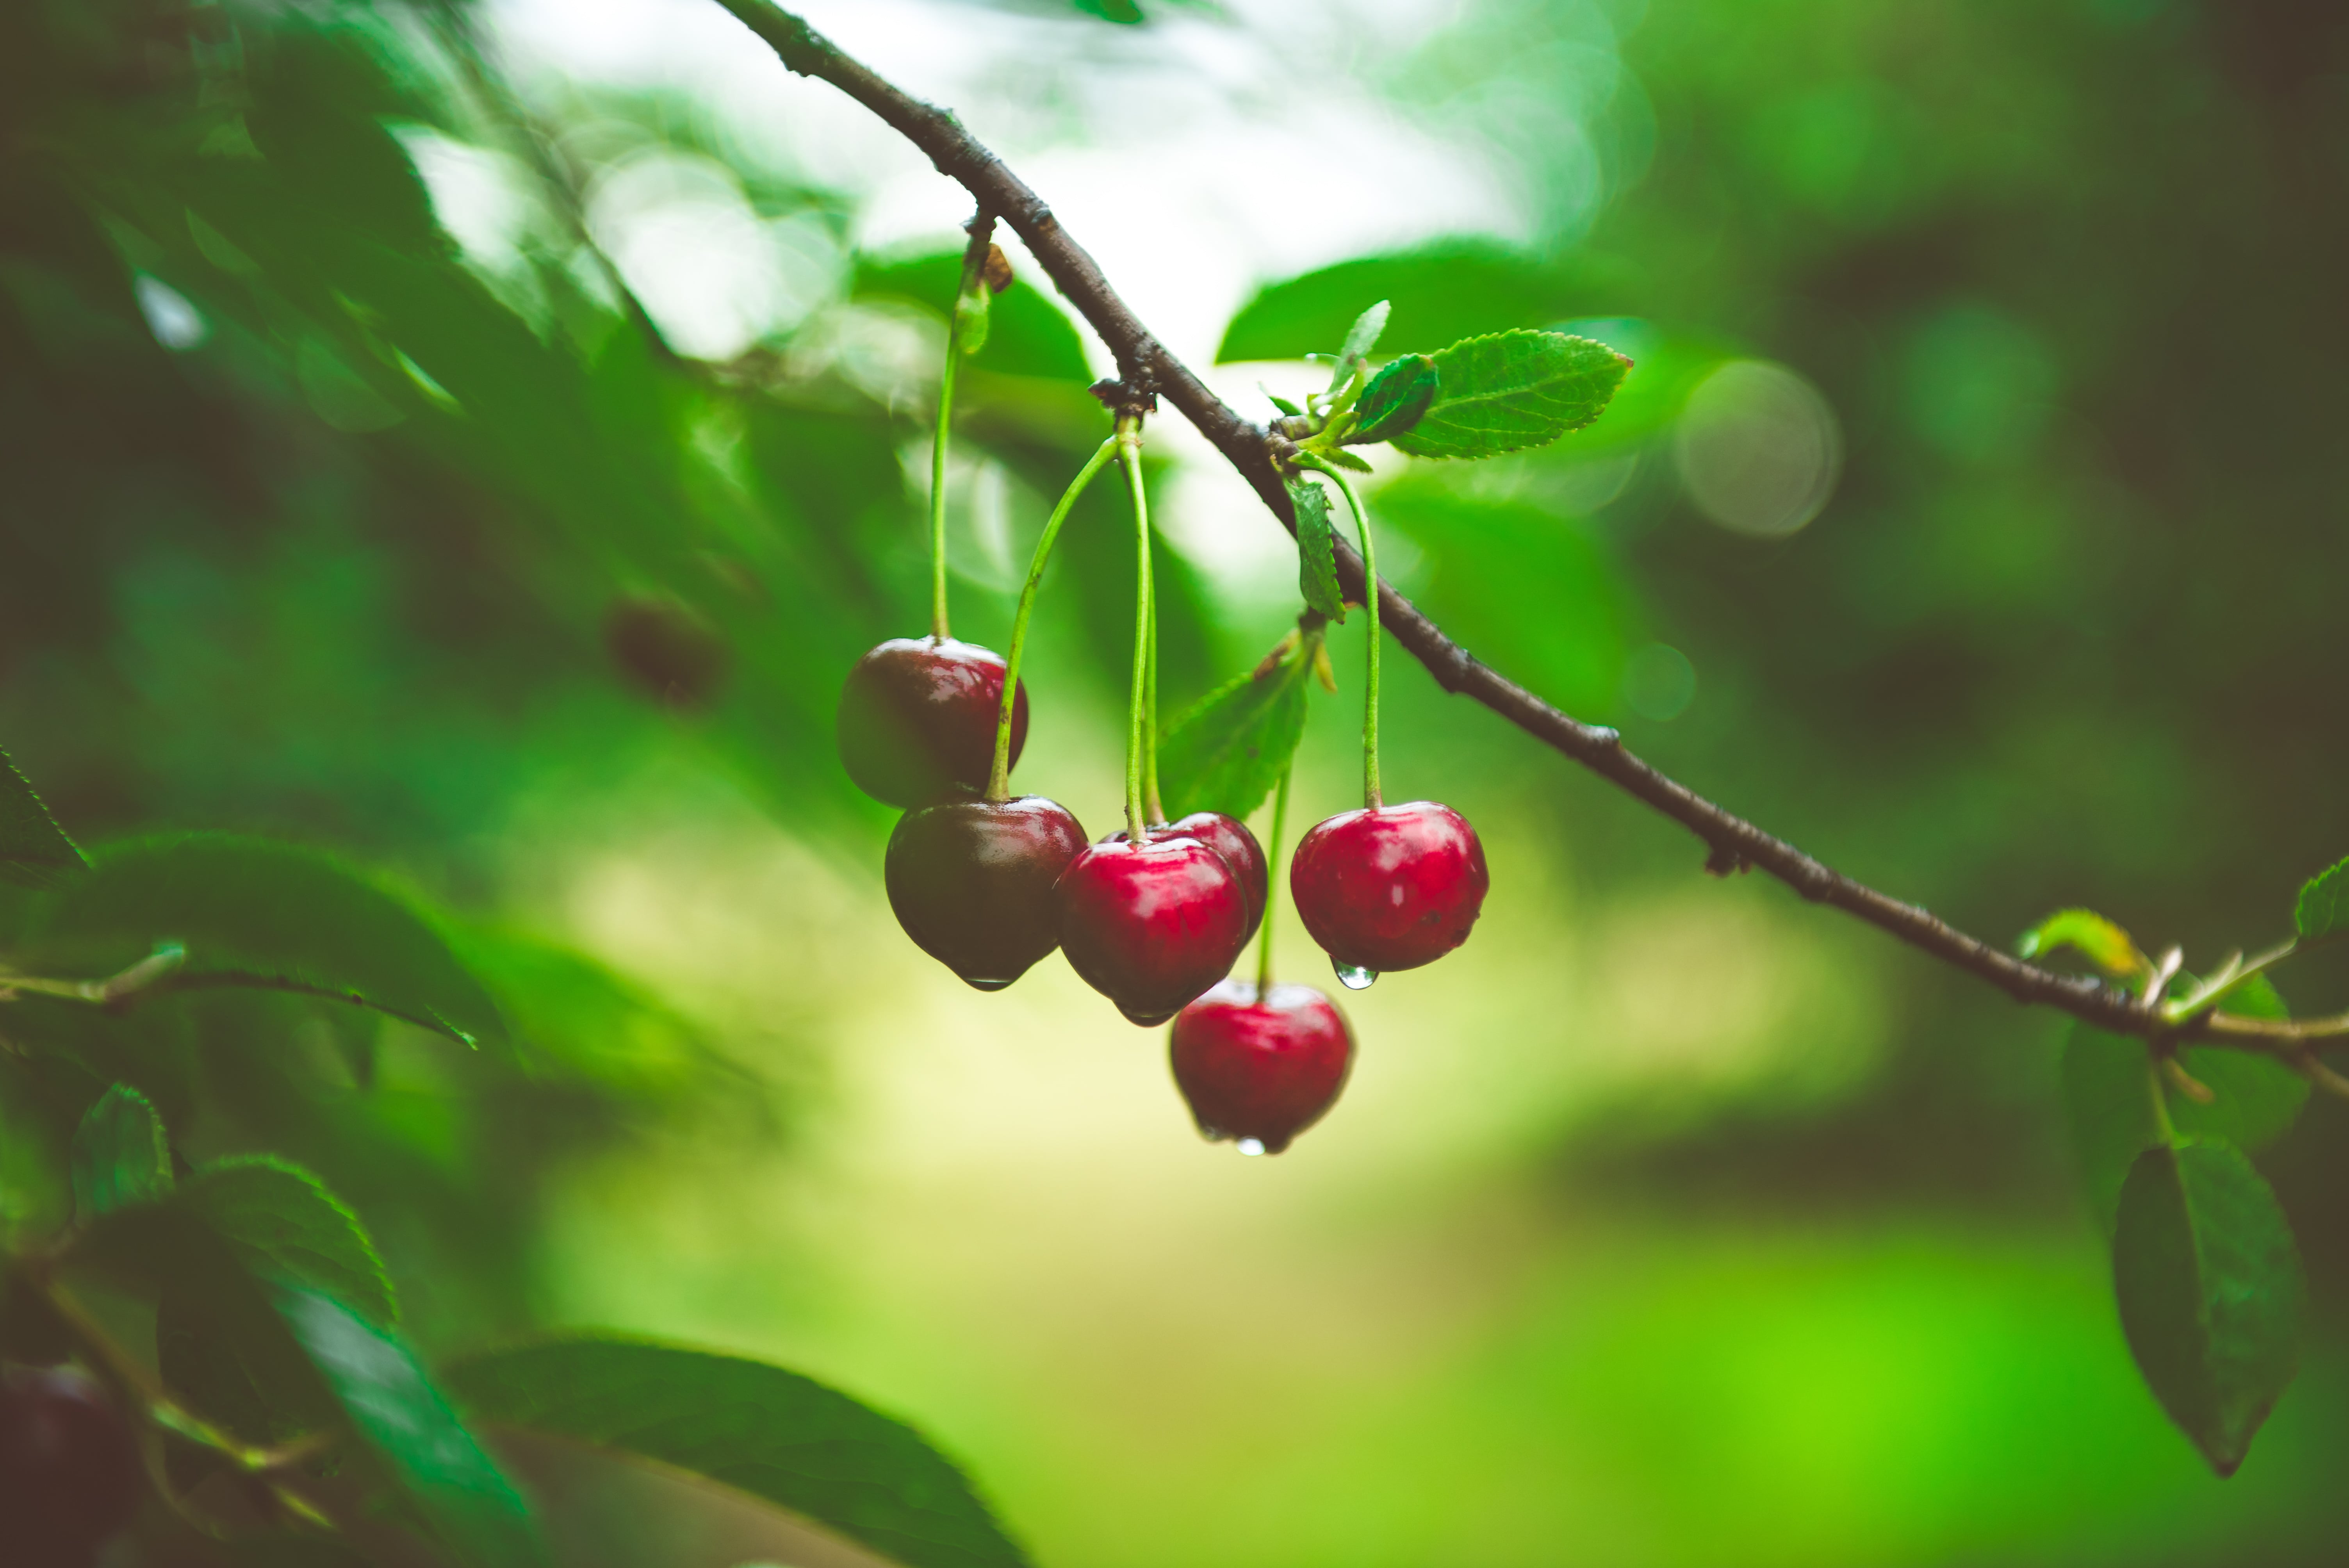 Ripe cherries growing on a cherry tree branch. Water droplets on fruits, cherry orchard after the rain. Agricultural landscape